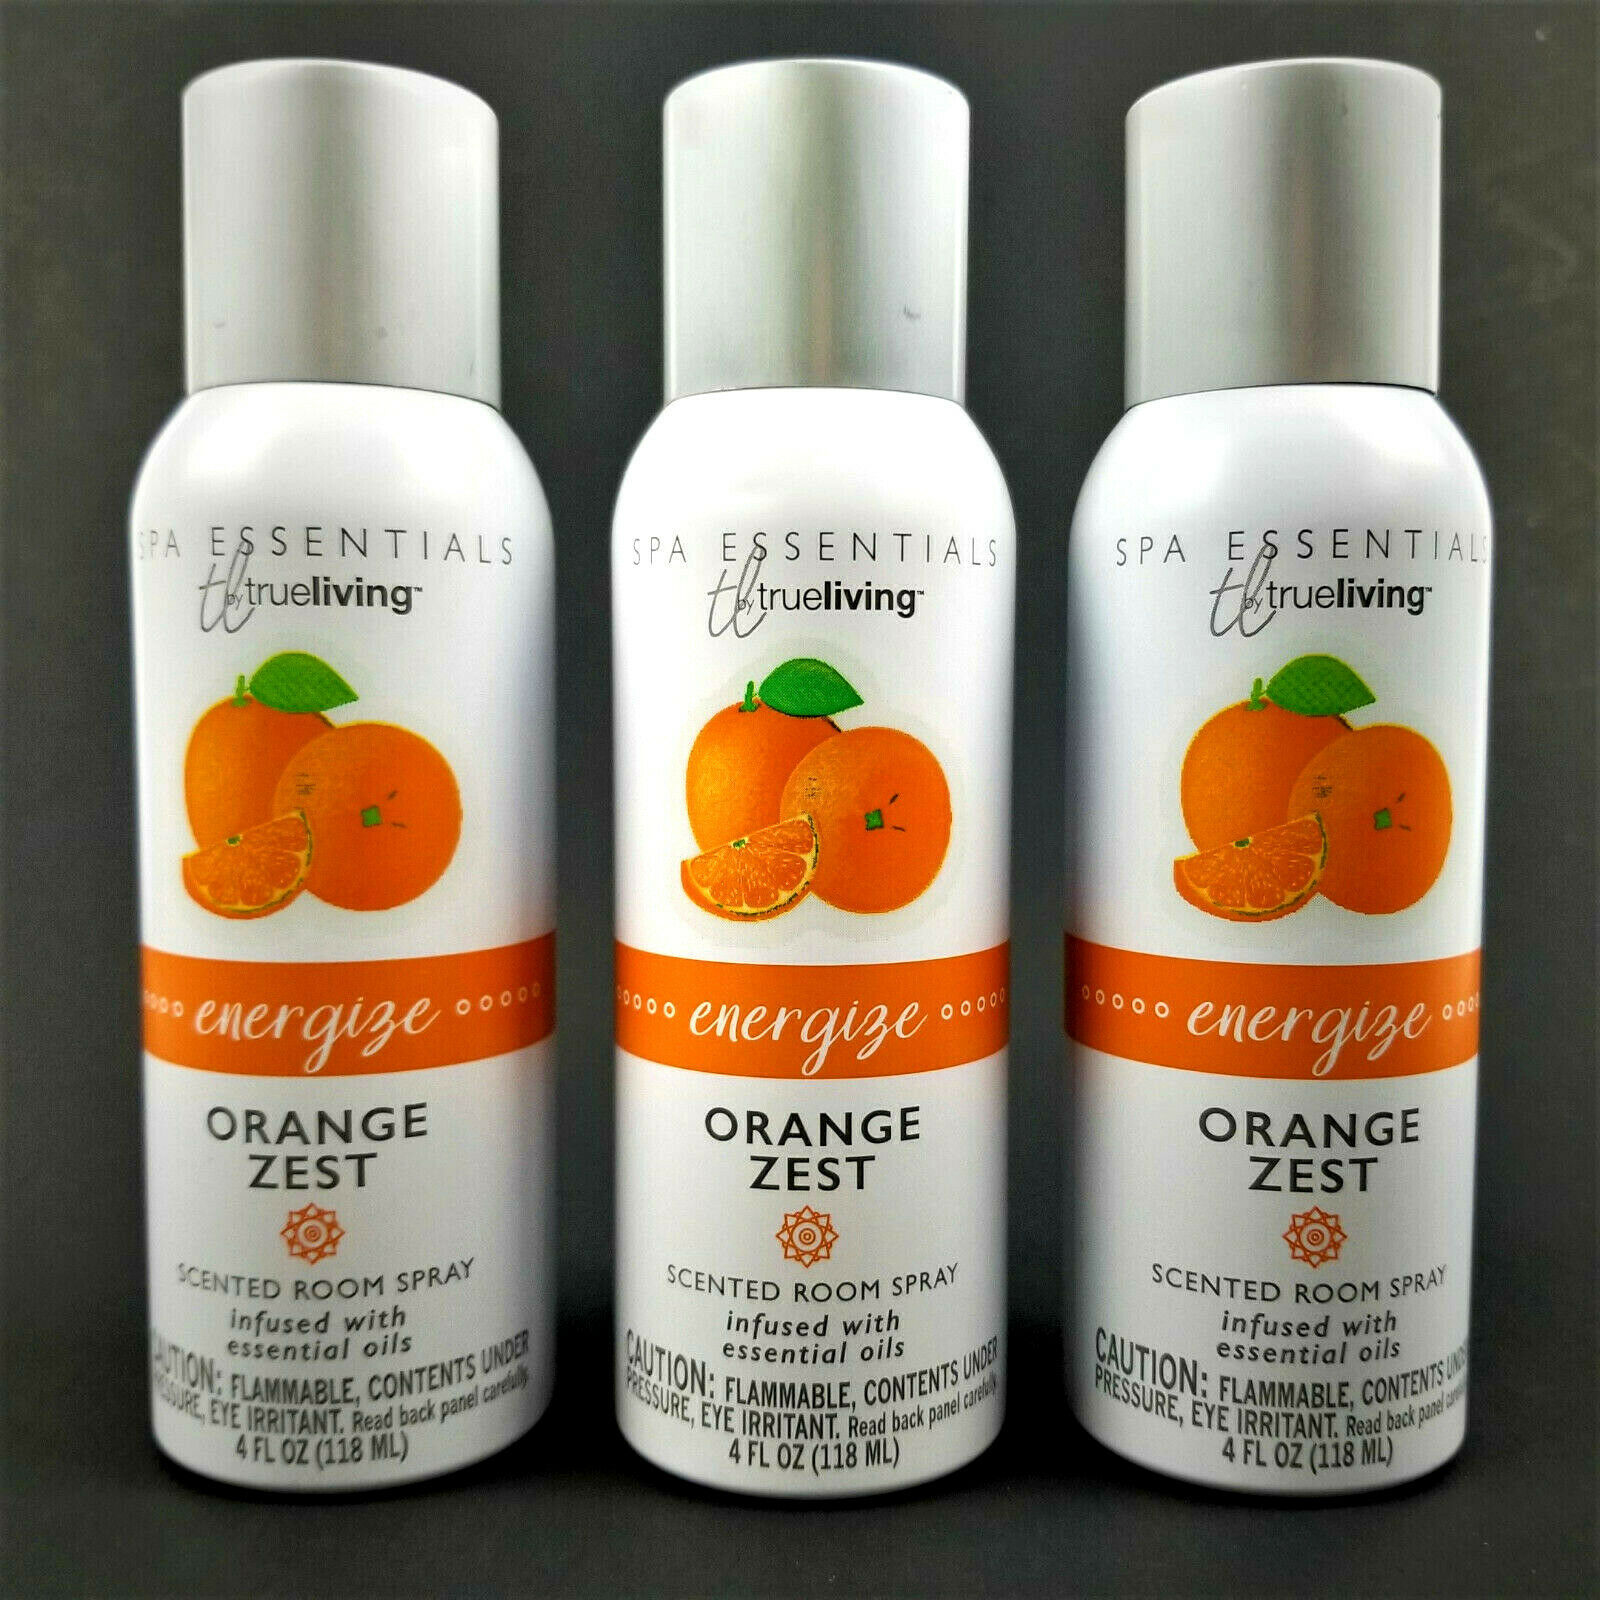 Primary image for 3 CANS Scented Room Spray ORANGE ZEST Infused w/Essential Oils! Spa Essentials